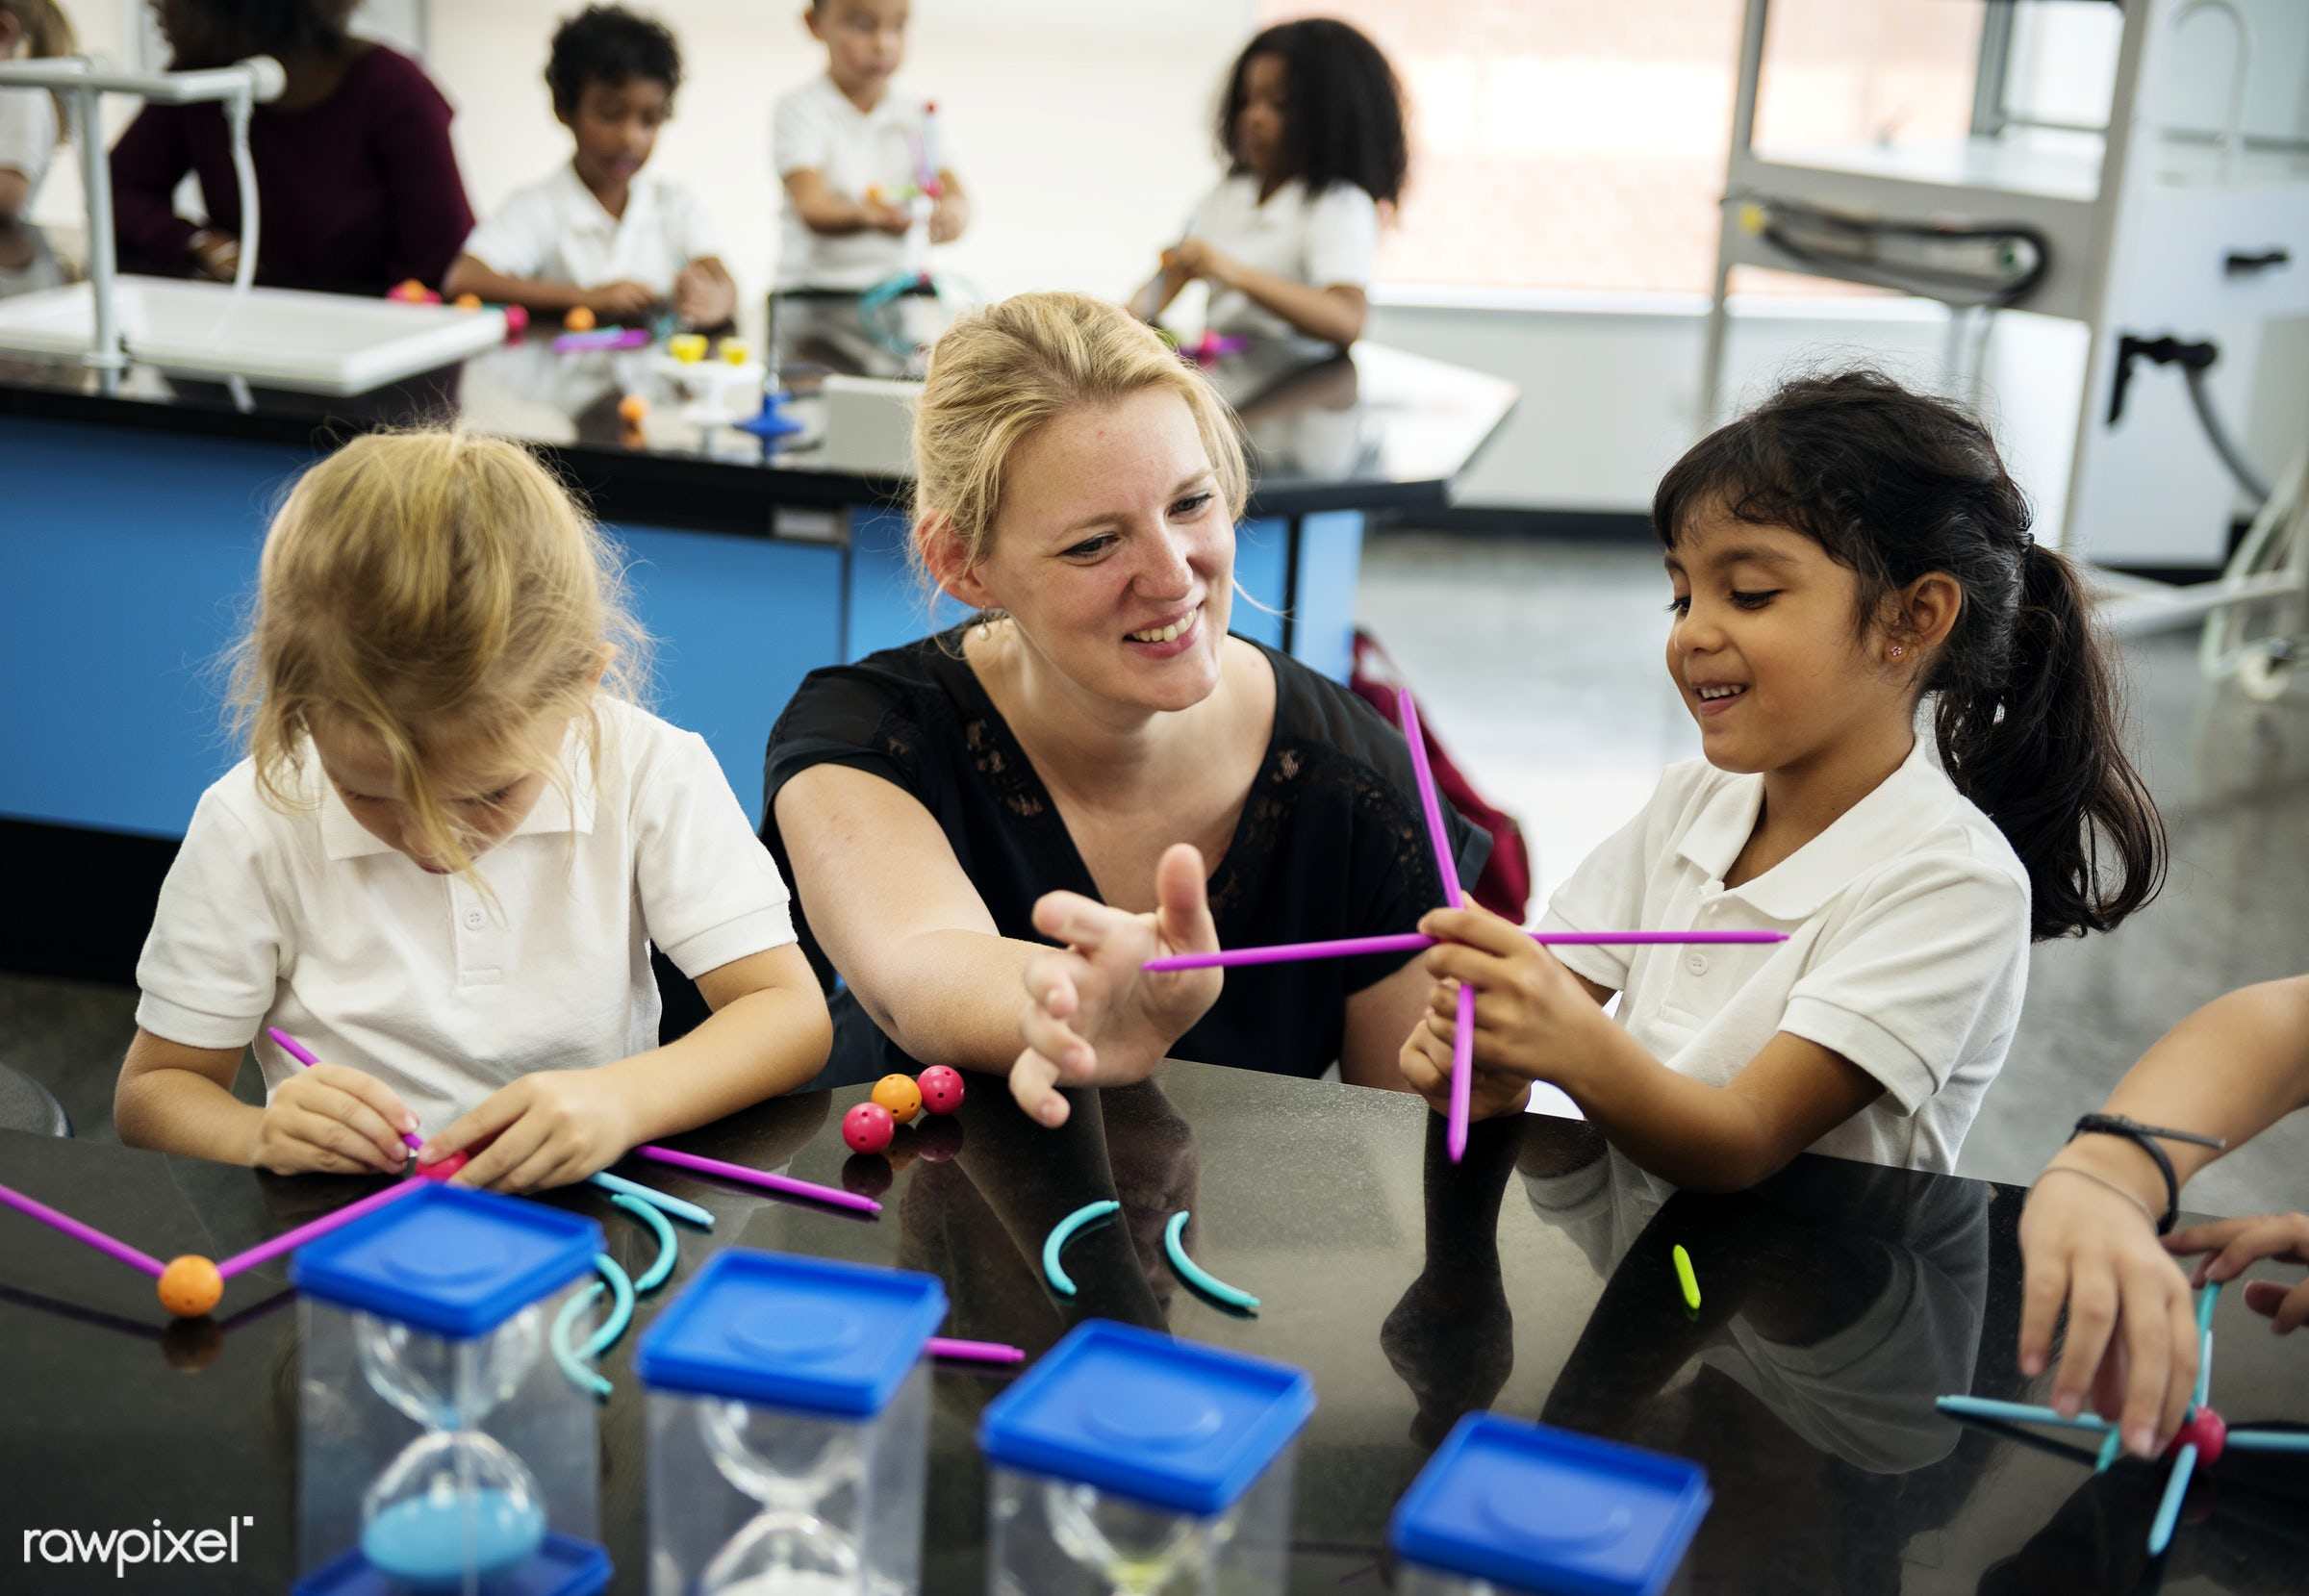 Happy kids at elementary school - knowledge, playful, children, study, education, imagination, lab, together, science,...